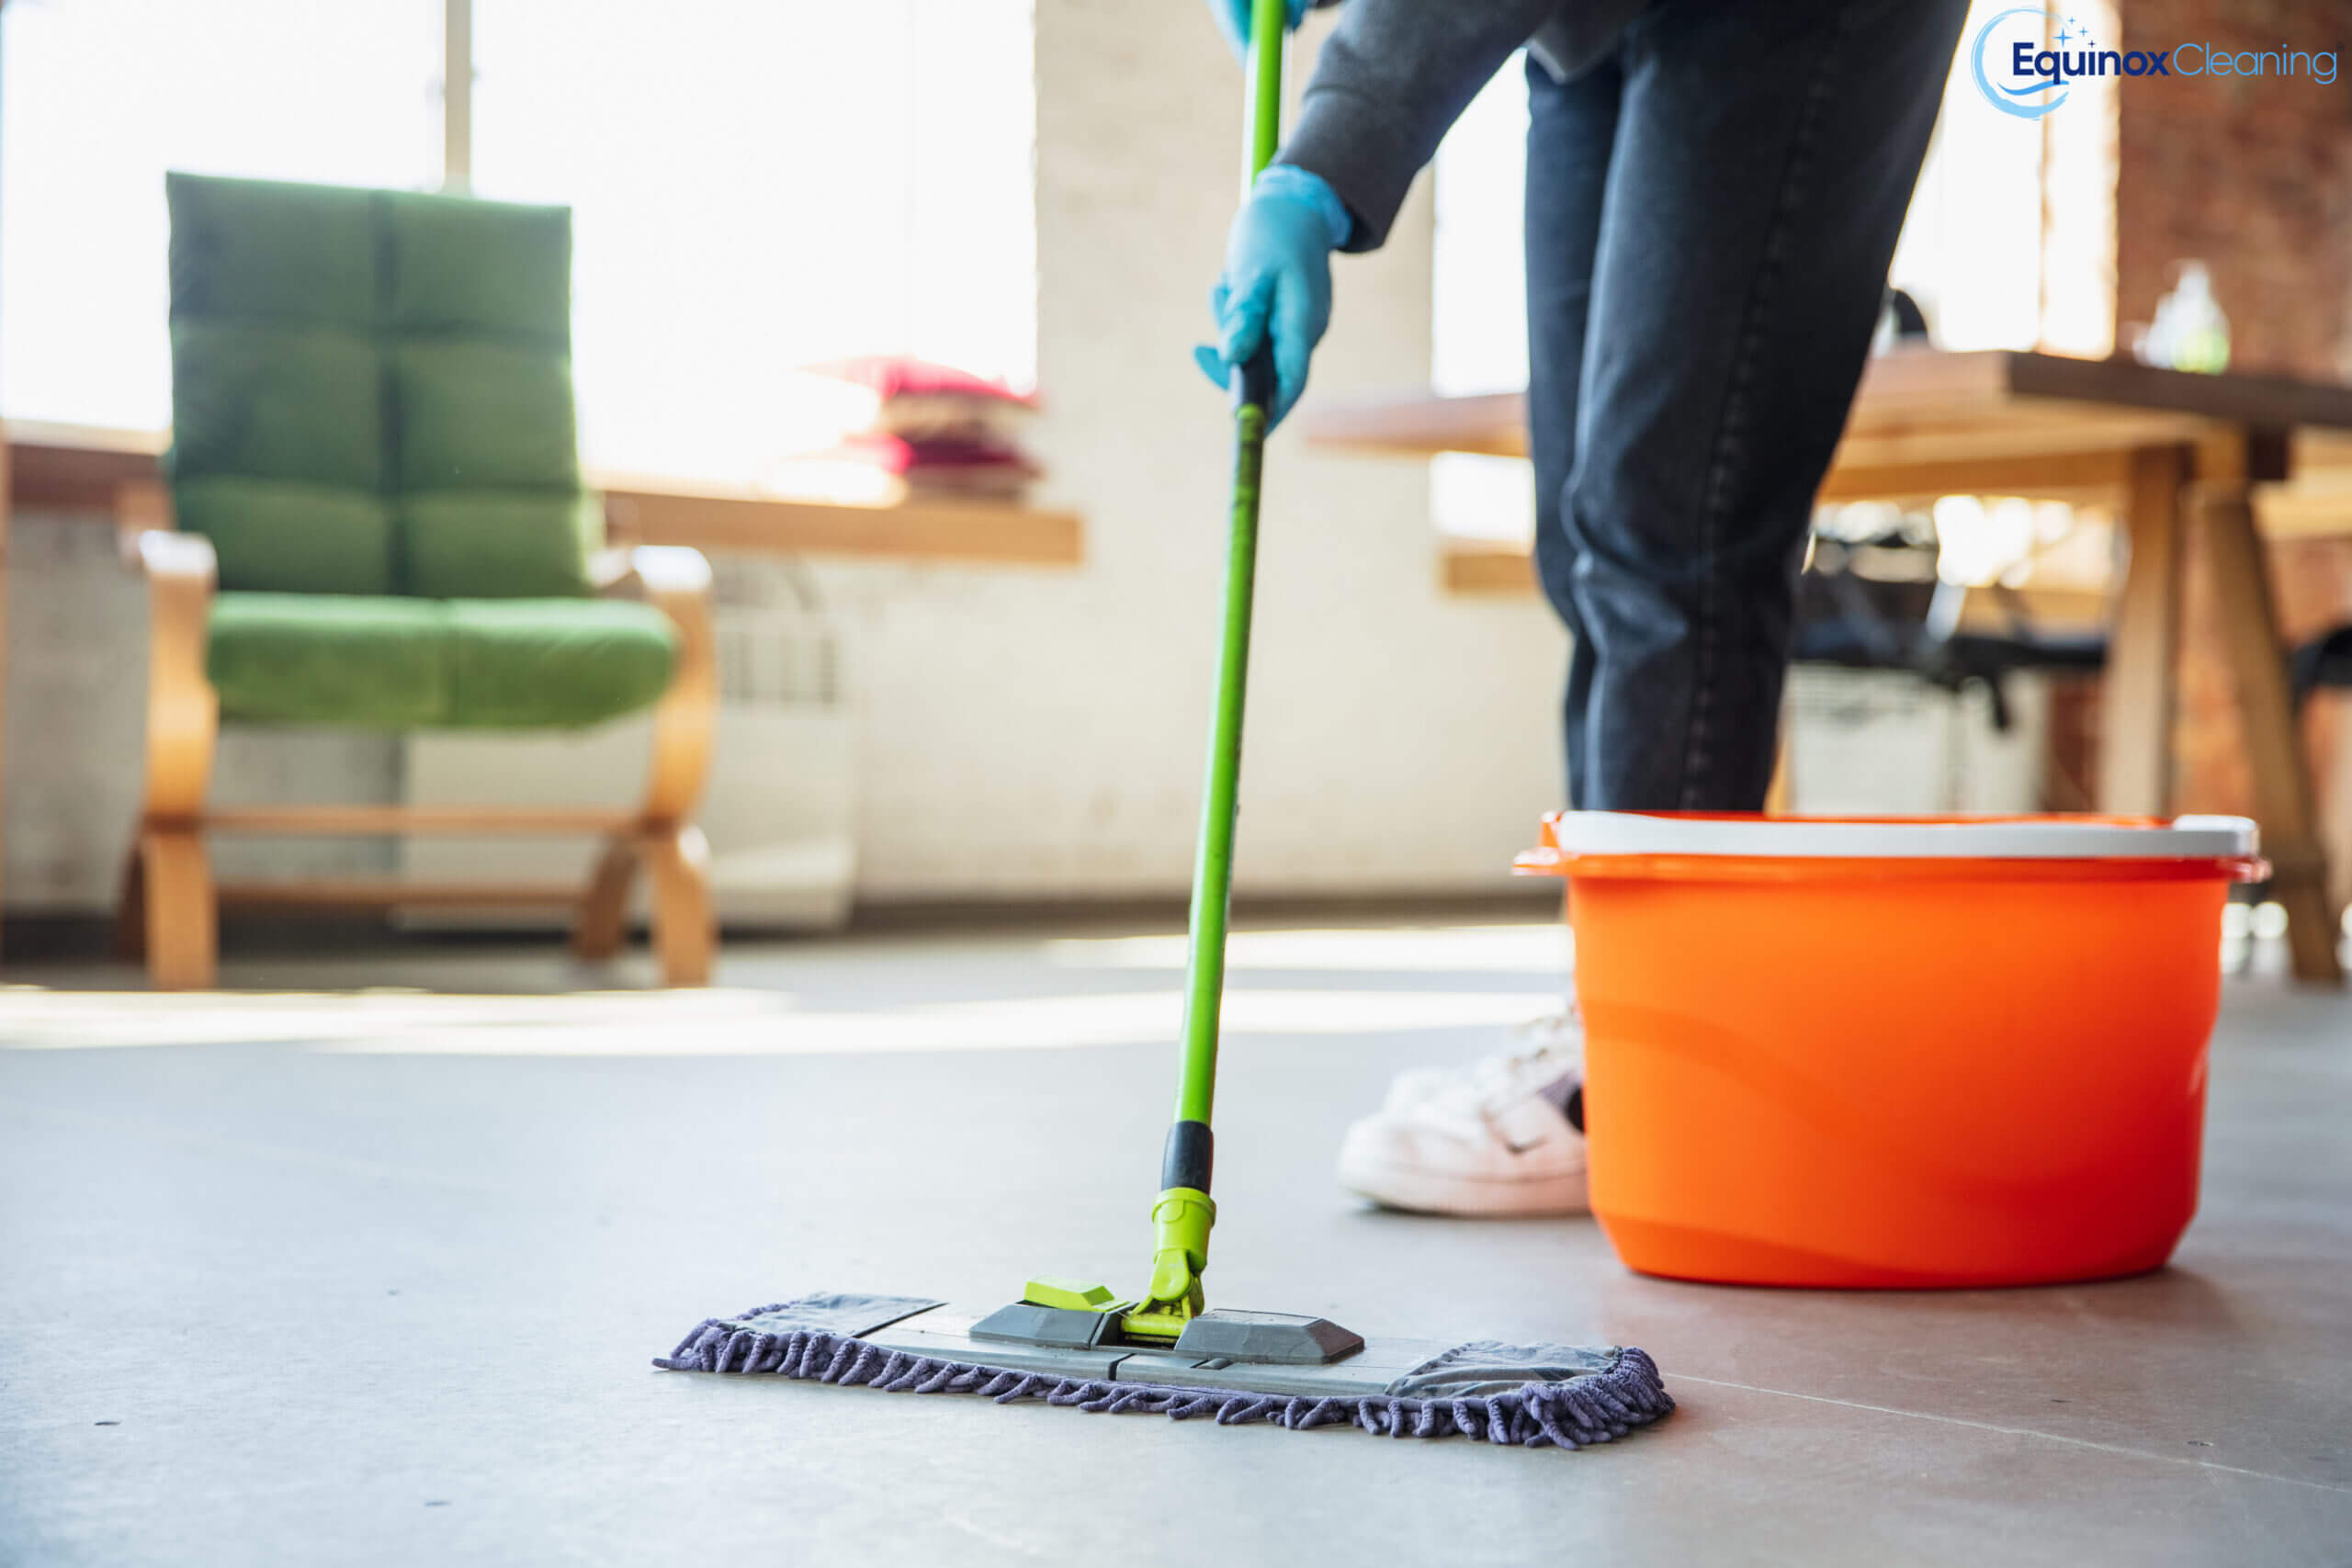 Commercial cleaning - office cleaning services - Equinox cleaning